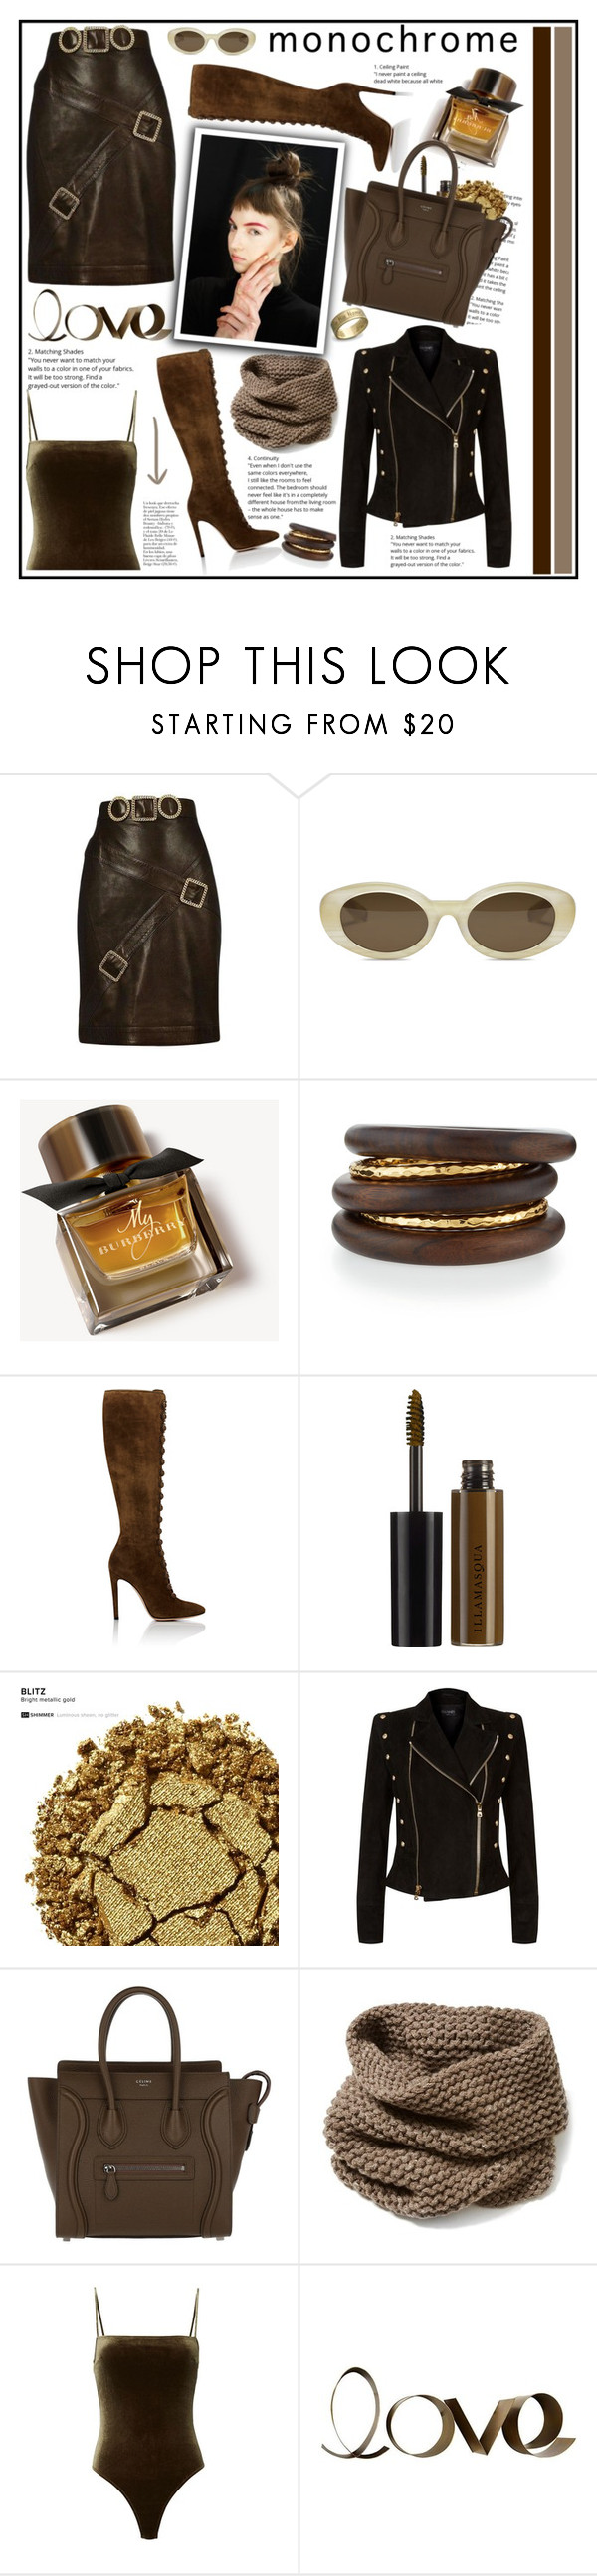 """""""One Color, Head to Toe"""" by cindy88 ❤ liked on Polyvore featuring Chanel, Elizabeth and James, Burberry, NEST Jewelry, Gianvito Rossi, Illamasqua, Urban Decay, Balmain, CÉLINE and Lafayette 148 New York"""